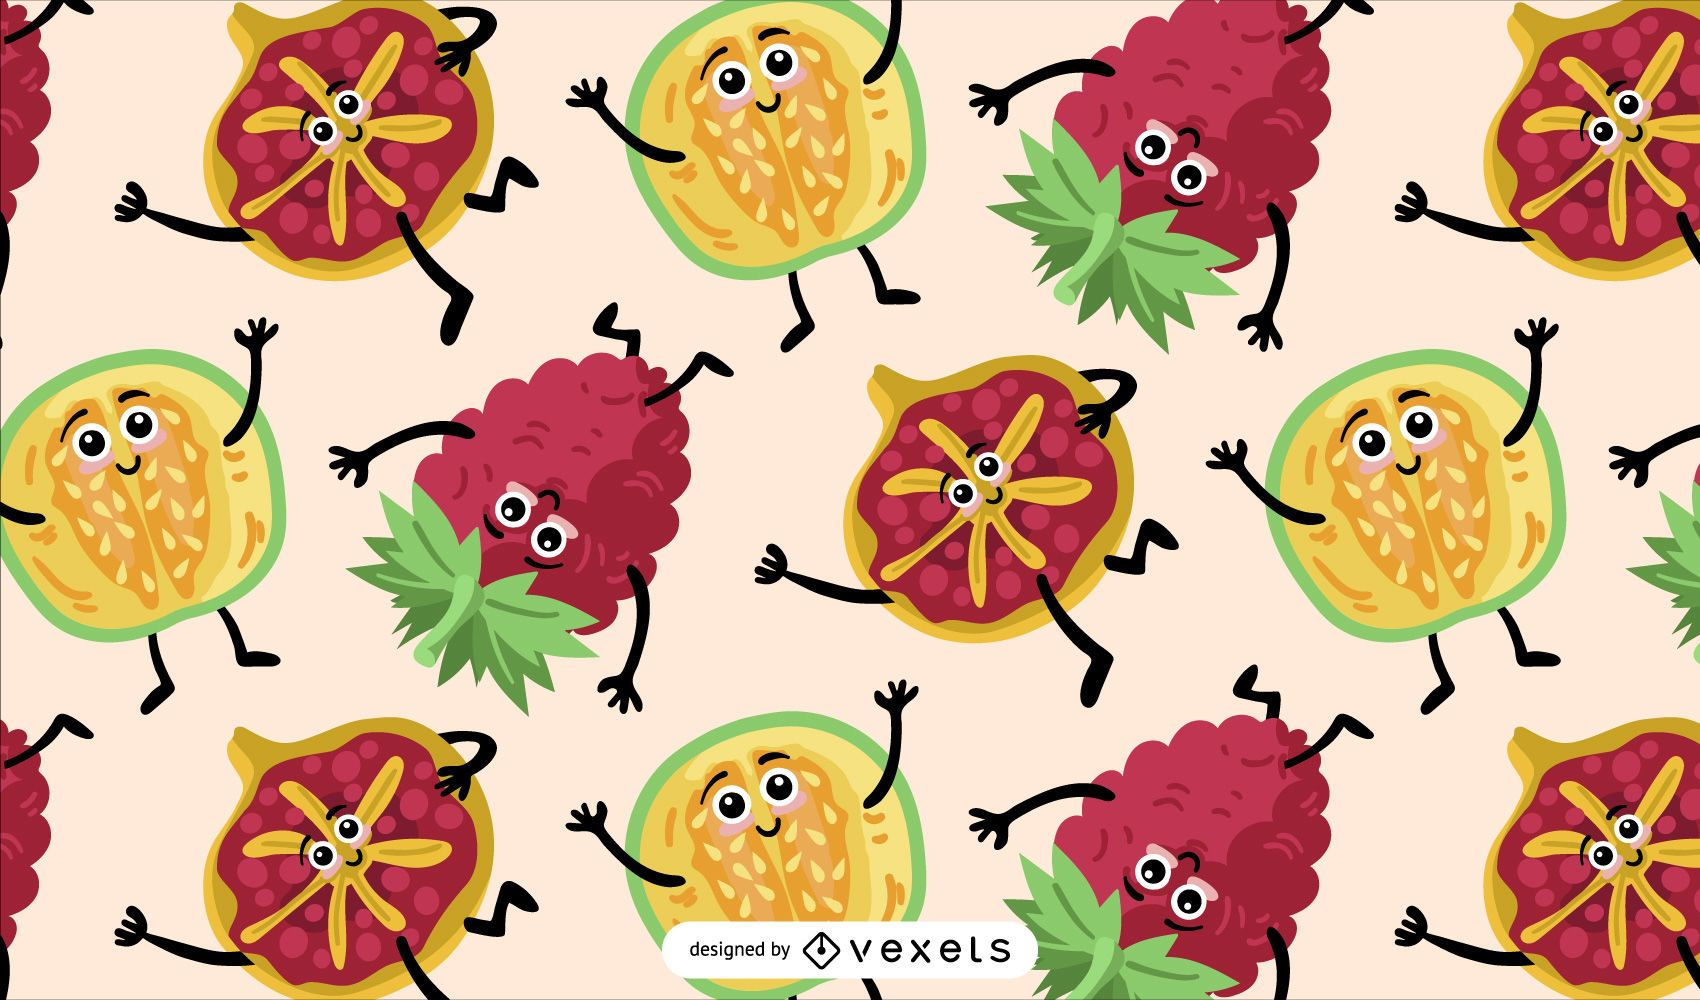 Fruits characters pattern design